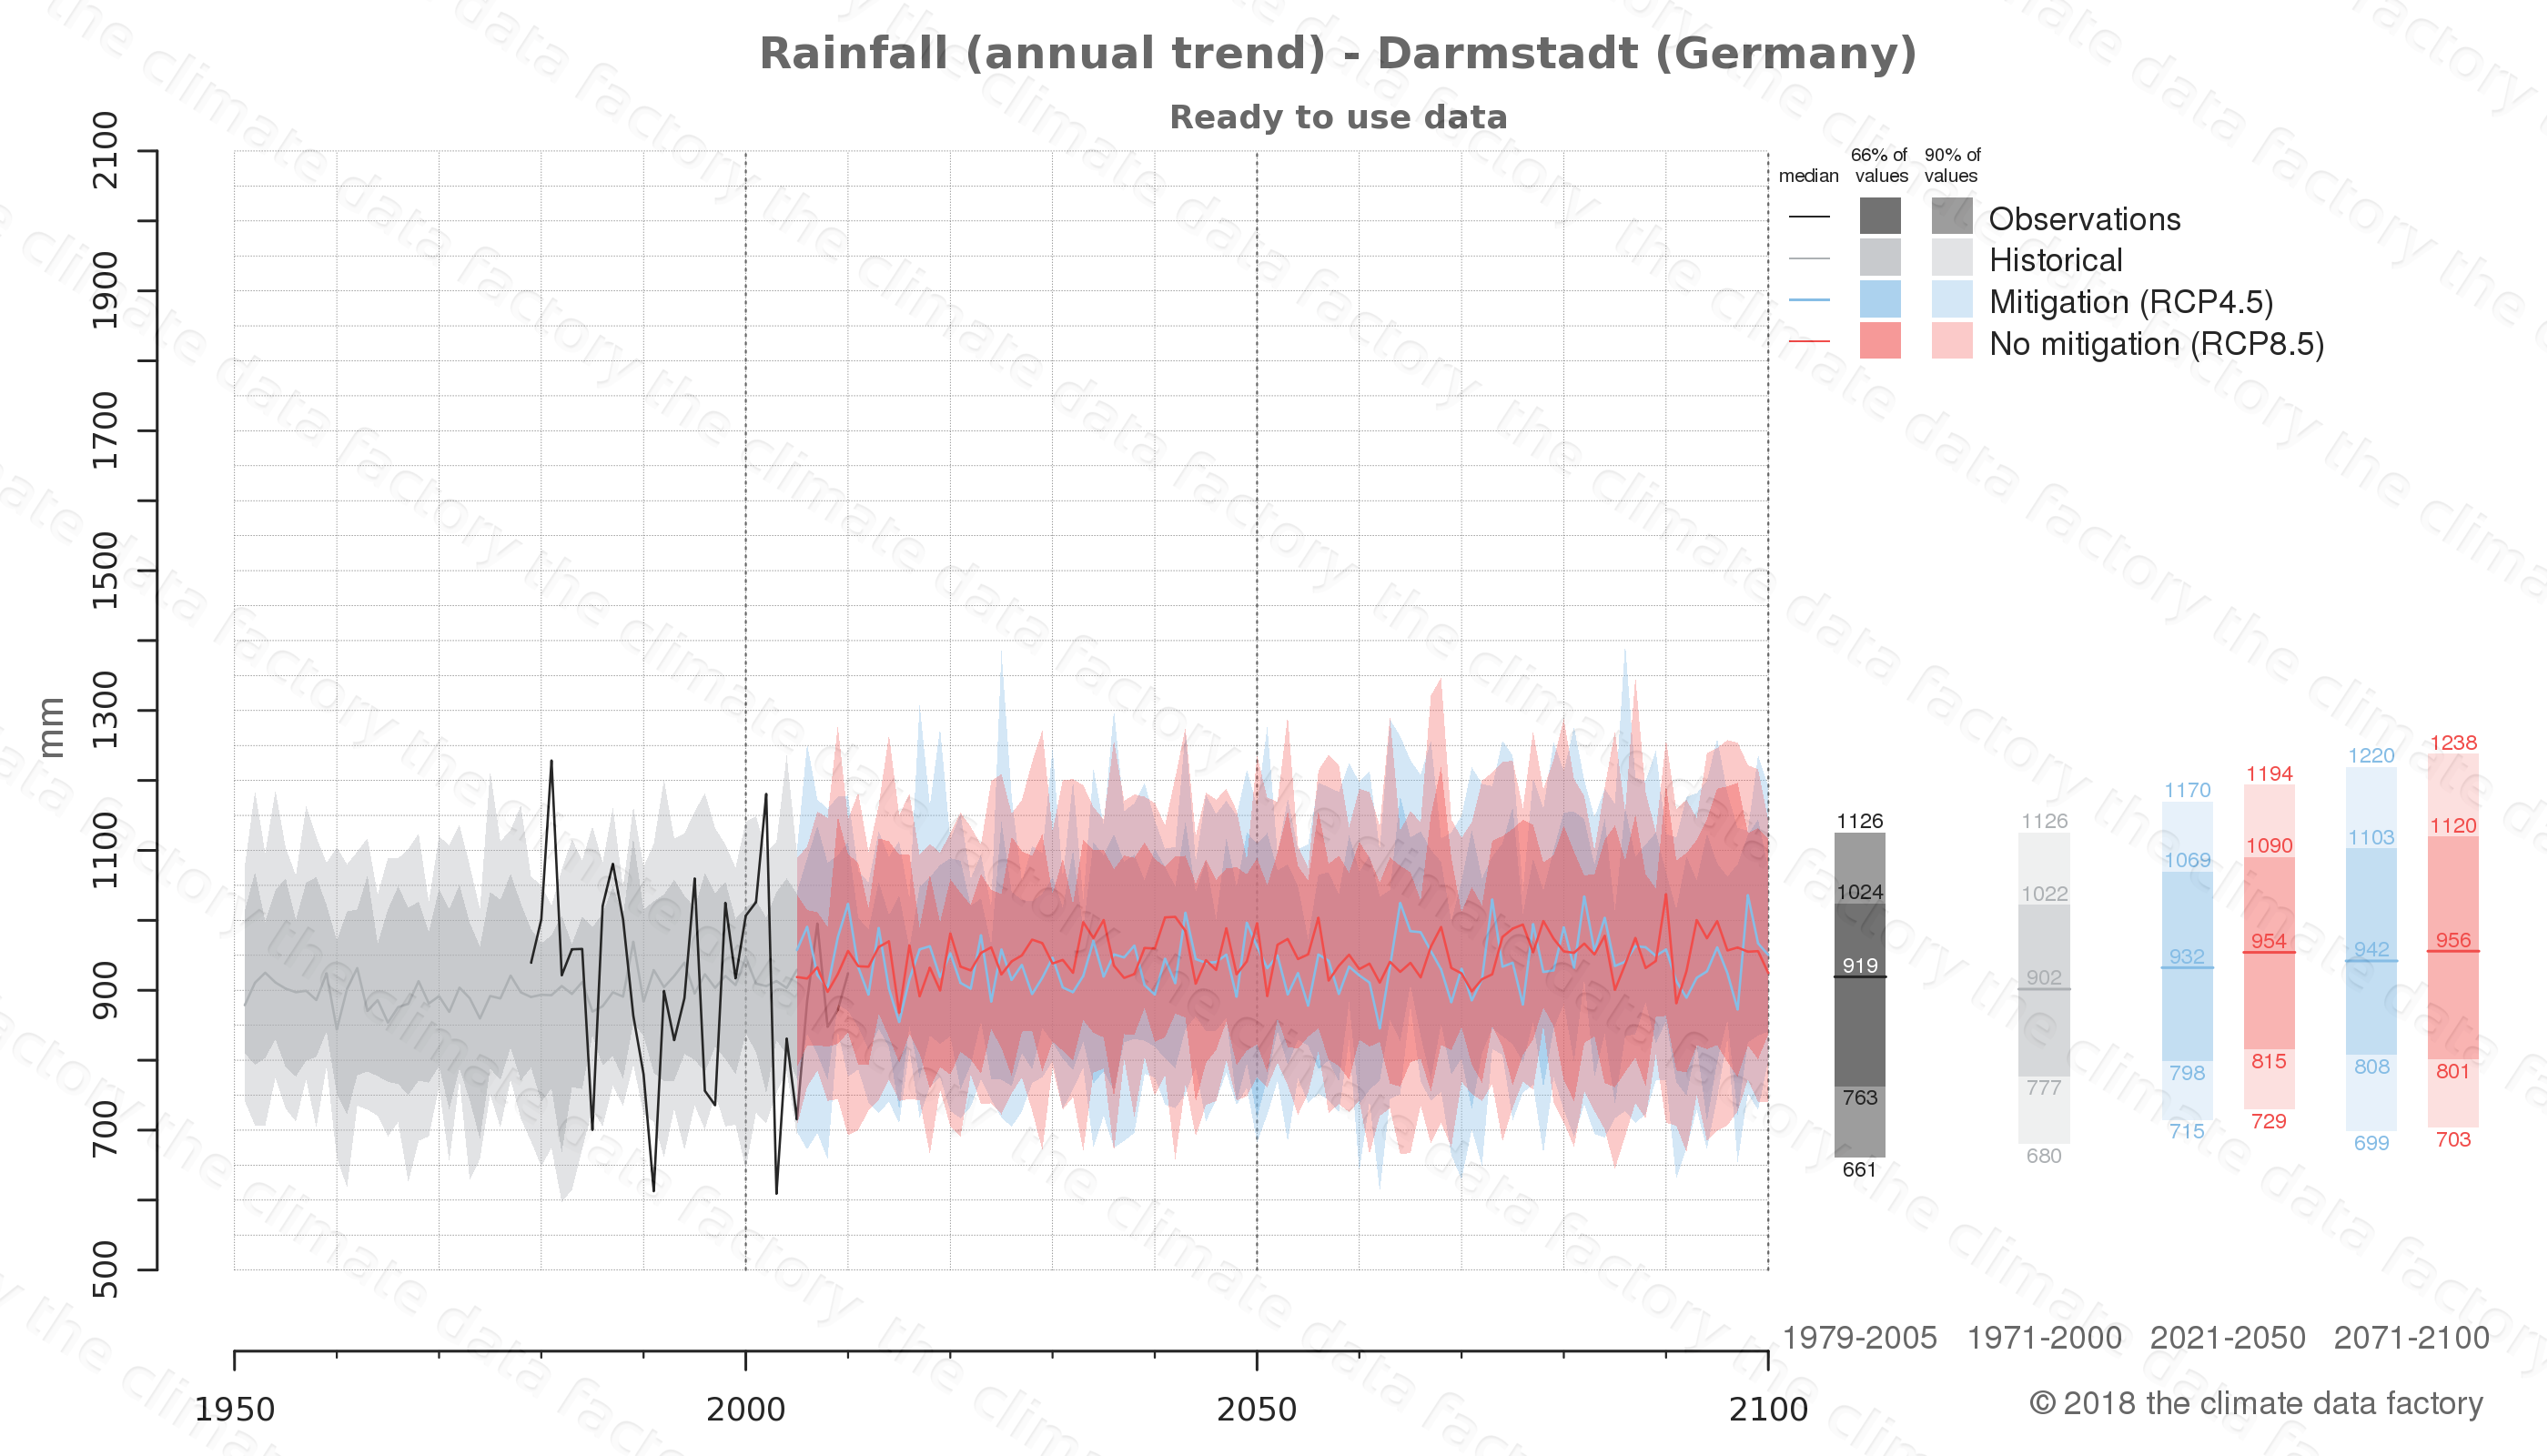 climate change data policy adaptation climate graph city data rainfall darmstadt germany